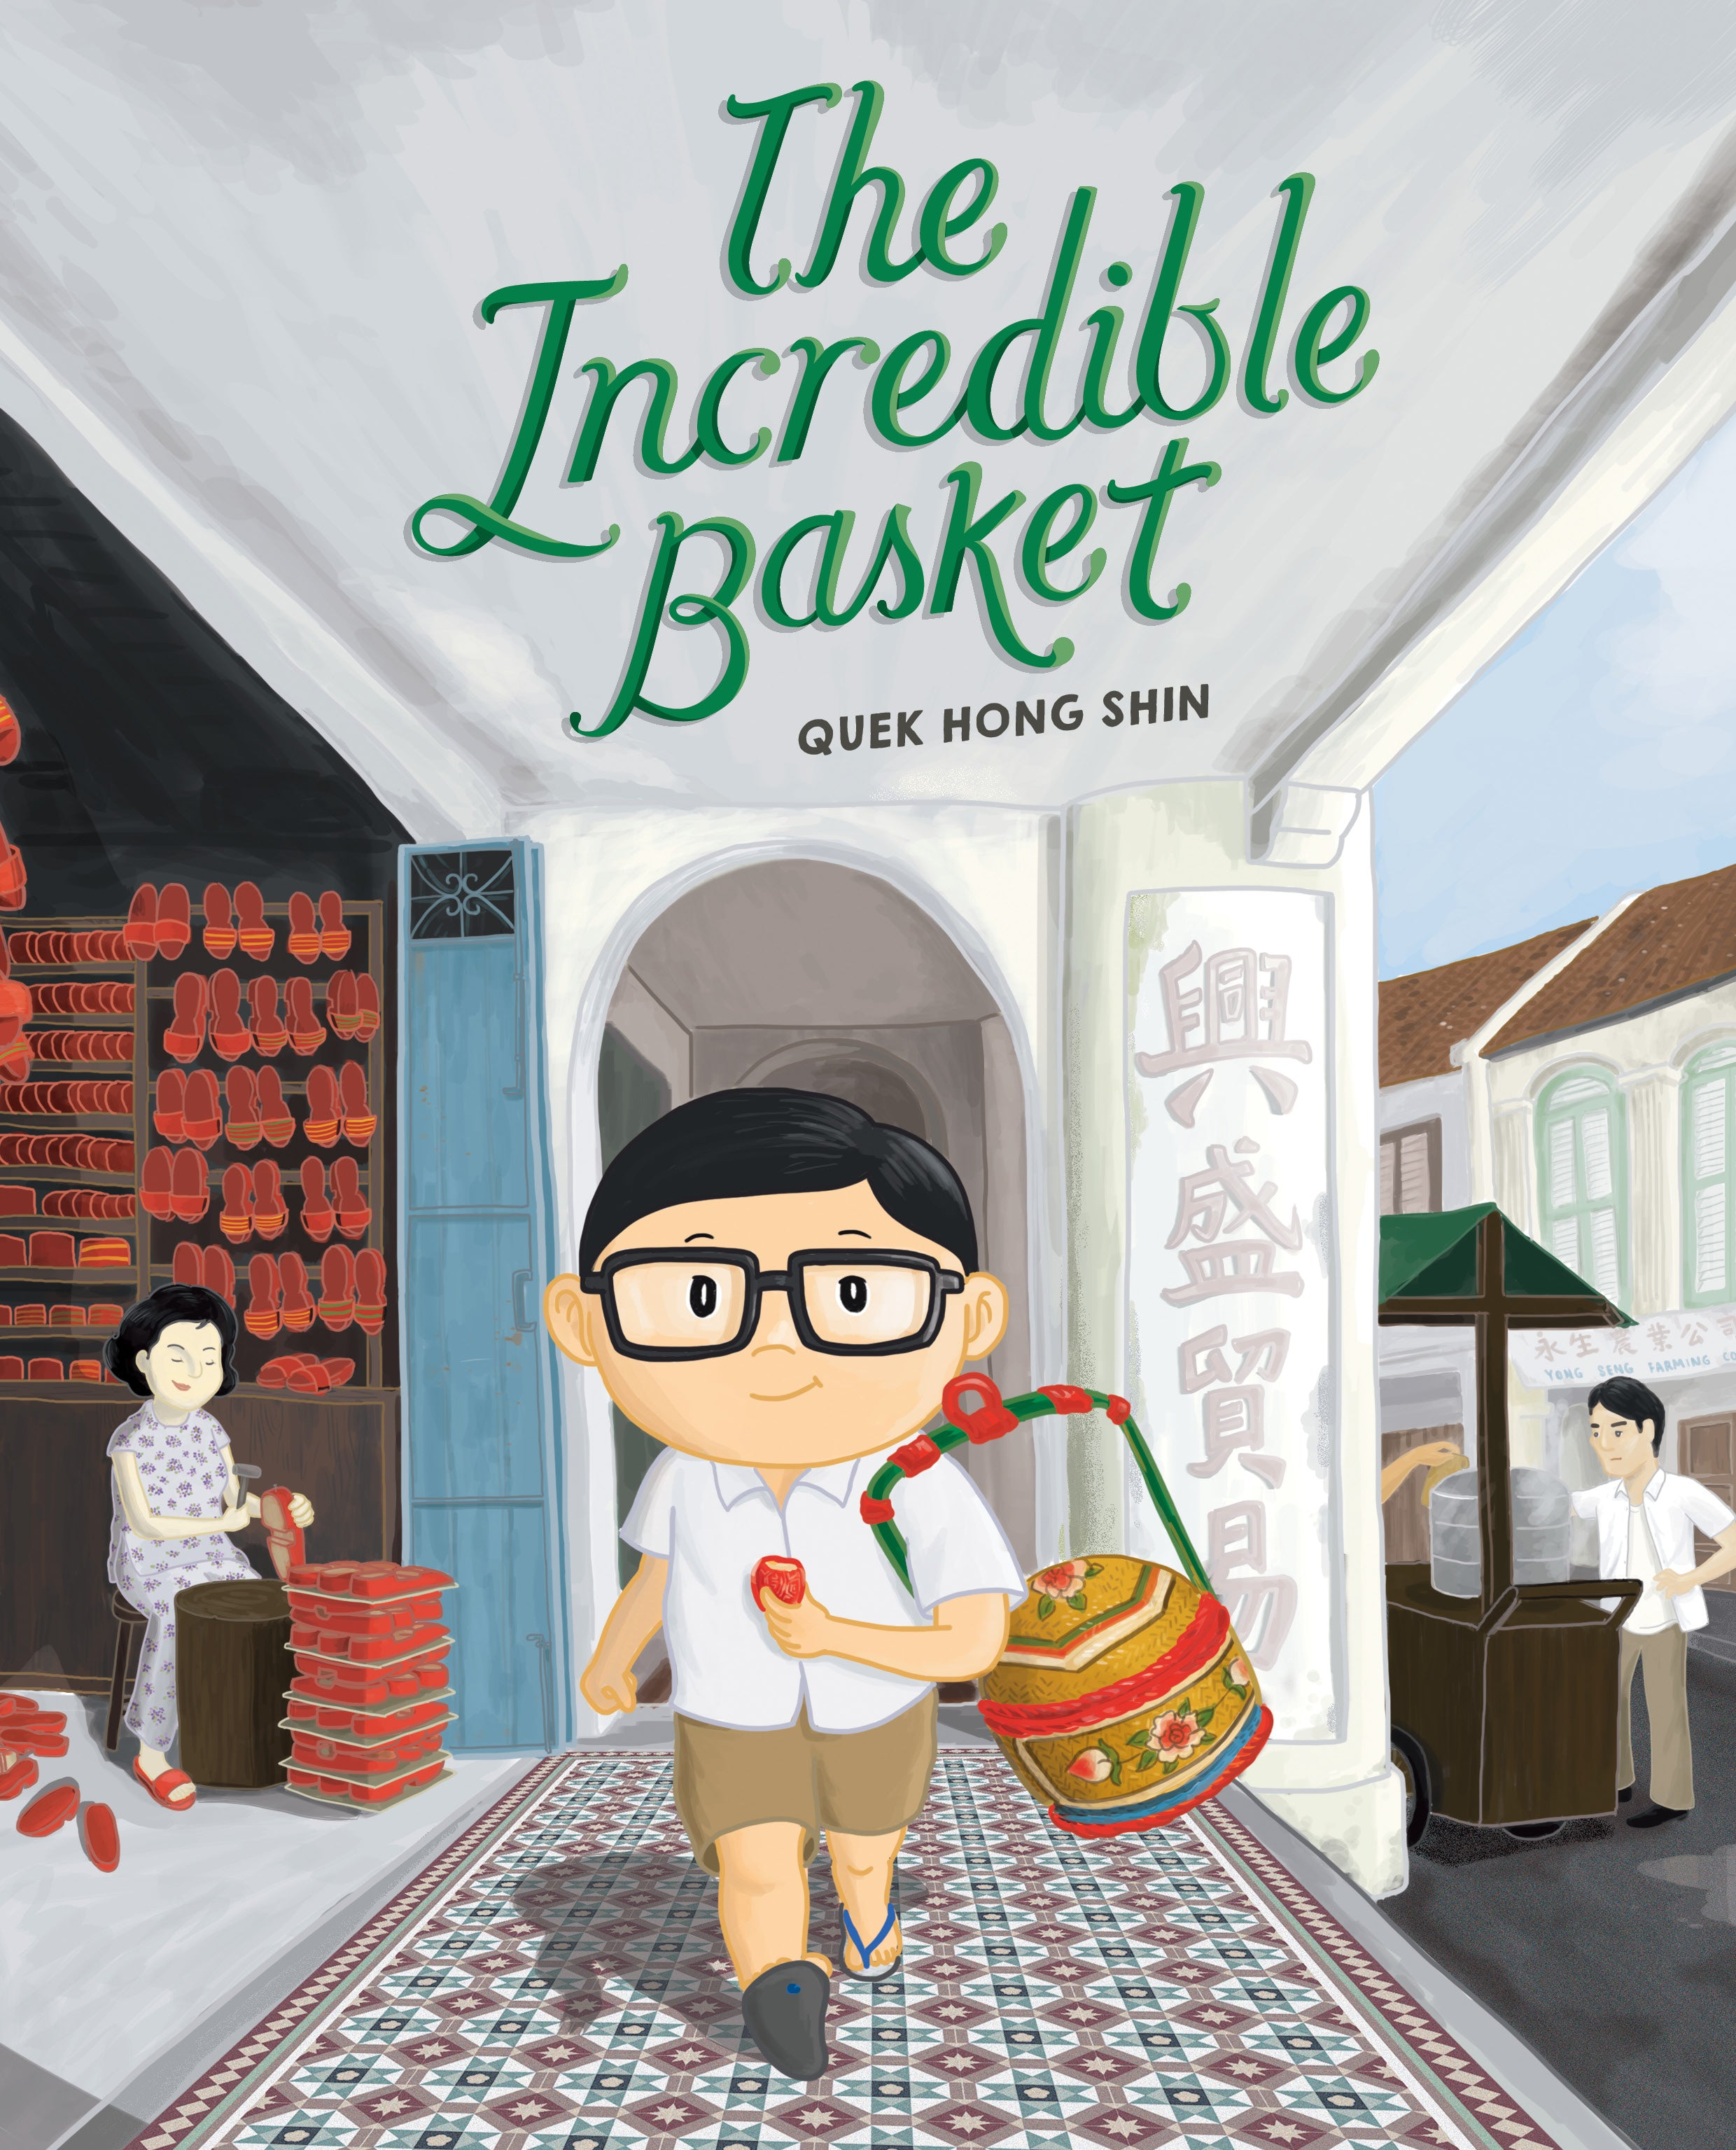 The Incredible Basket